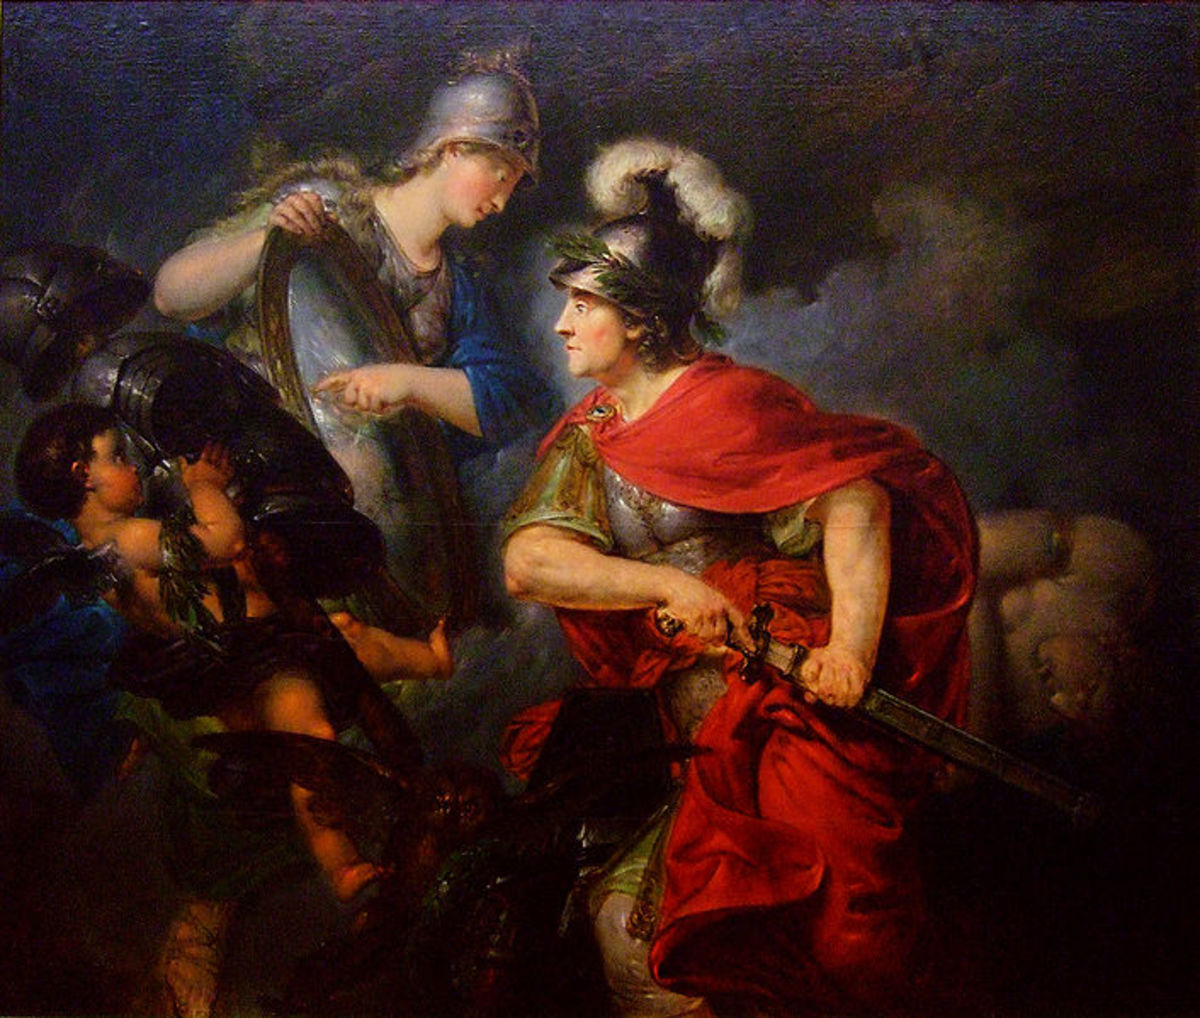 Christian Bernhardt Rode: Frederick the Great as Perseus (Allegory on the beginning of the Seven Years' War 1756), oil on canvas, 1789